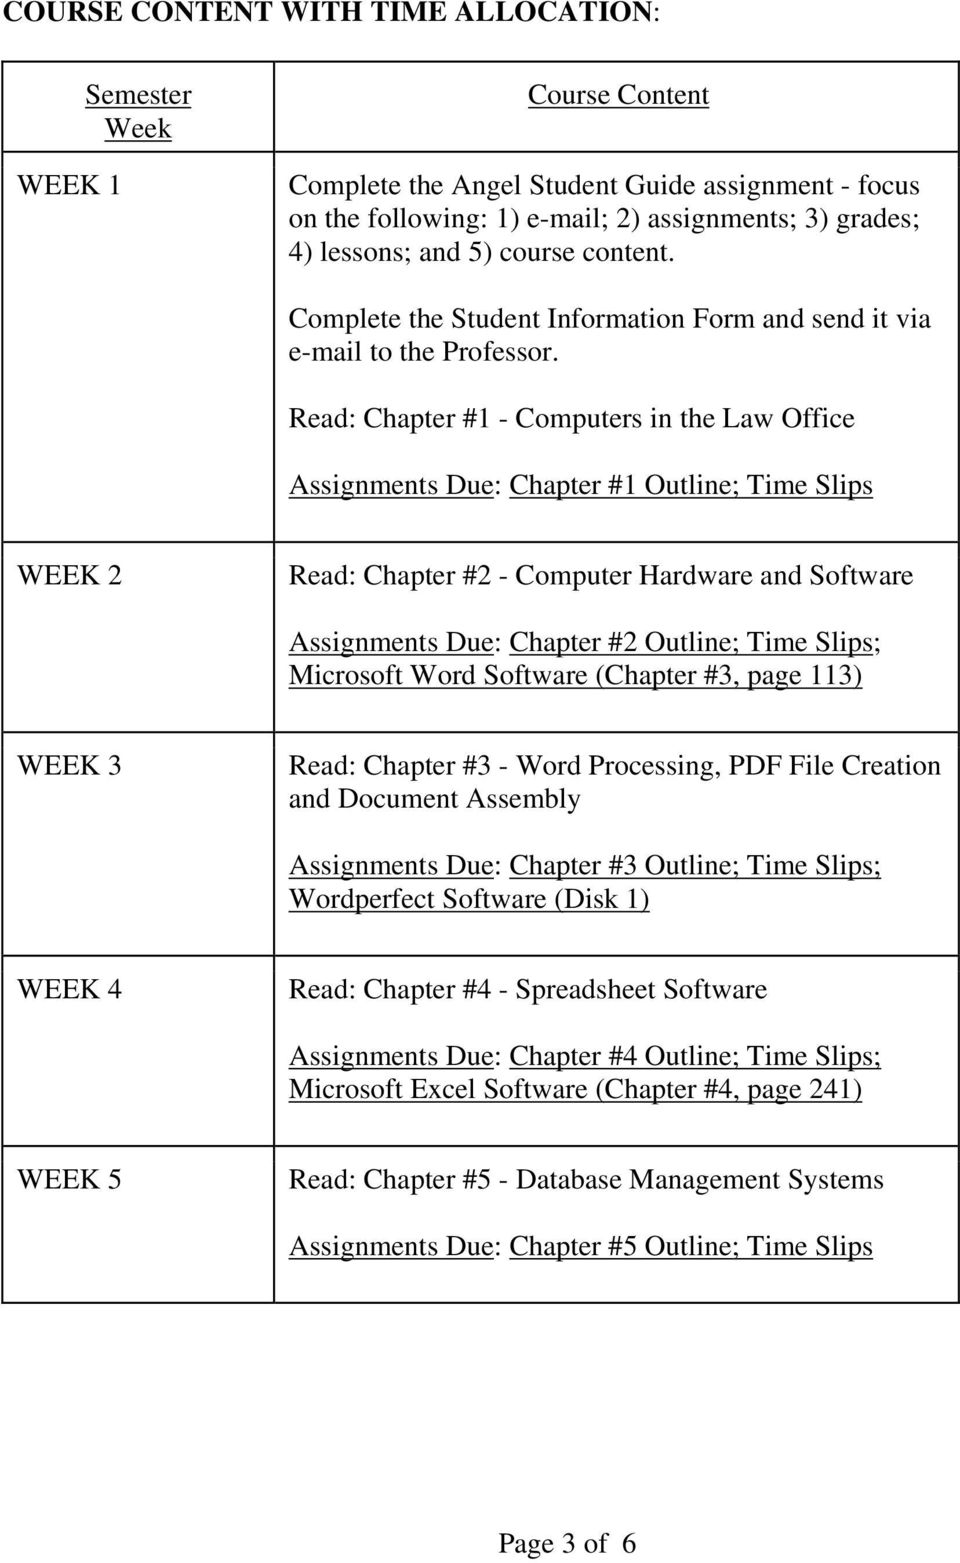 Read: Chapter #1 - Computers in the Law Office Assignments Due: Chapter #1 Outline; Time Slips WEEK 2 Read: Chapter #2 - Computer Hardware and Software Assignments Due: Chapter #2 Outline; Time